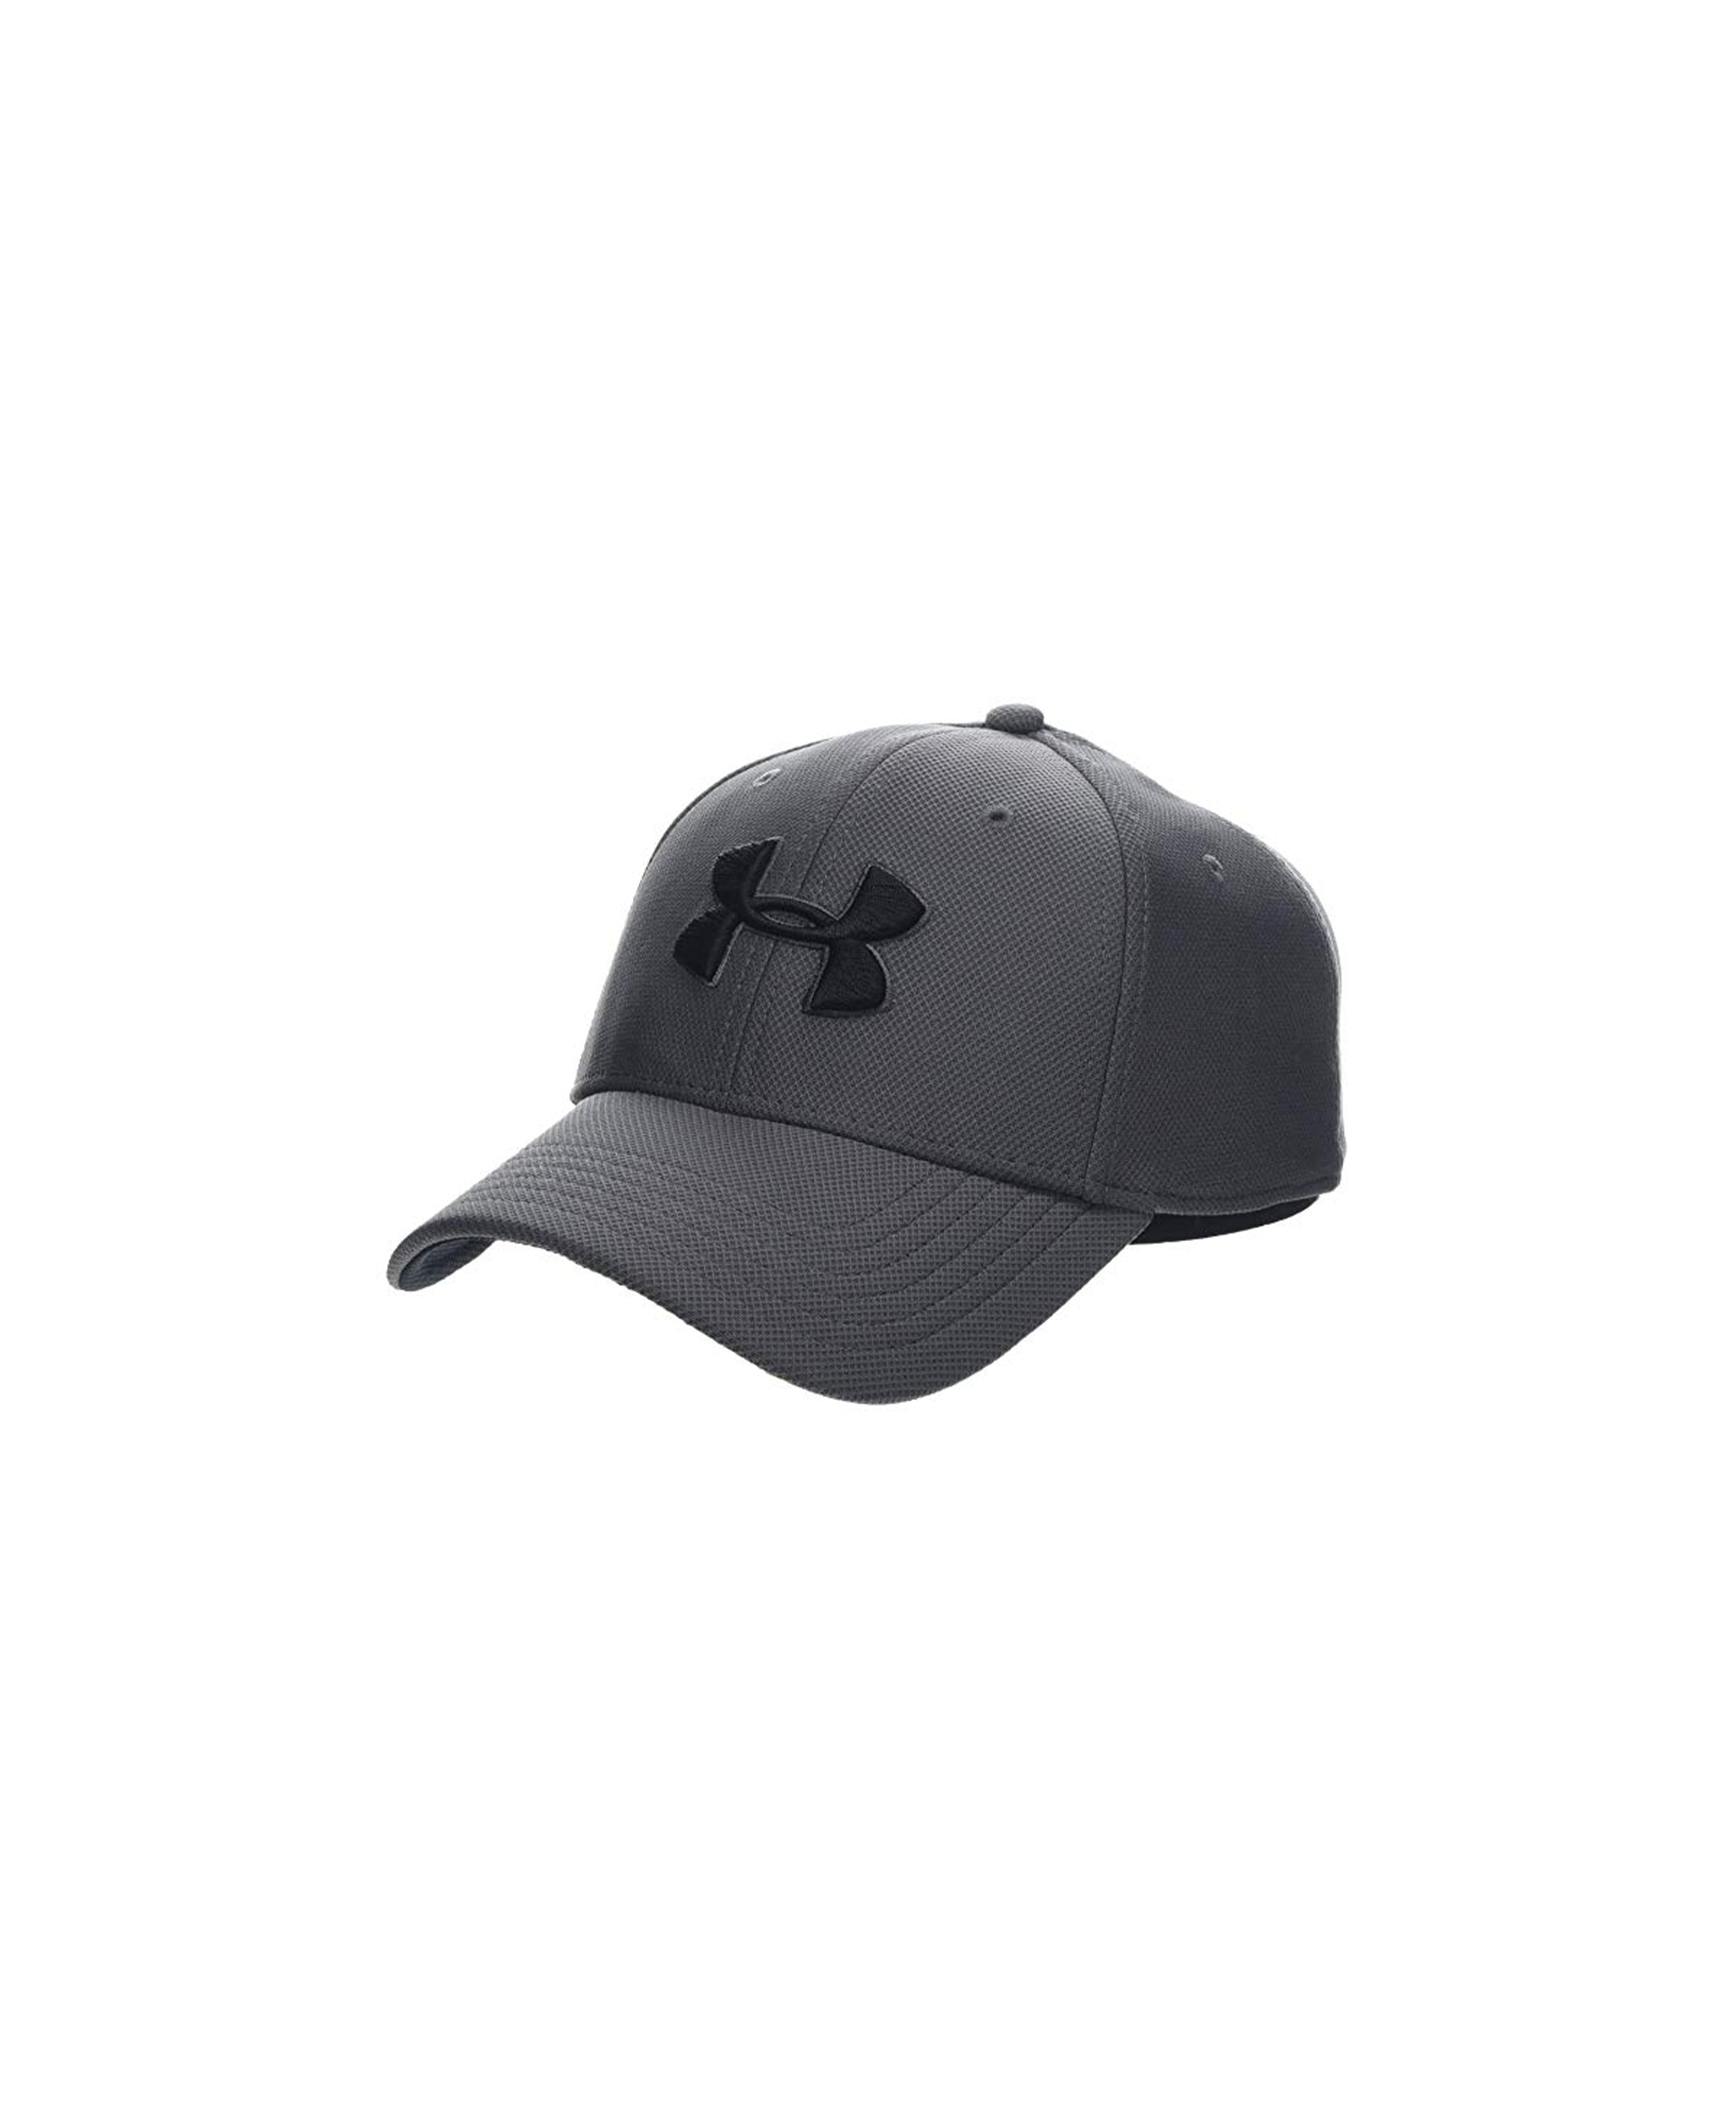 NEW FLY Huck it Youth Hat